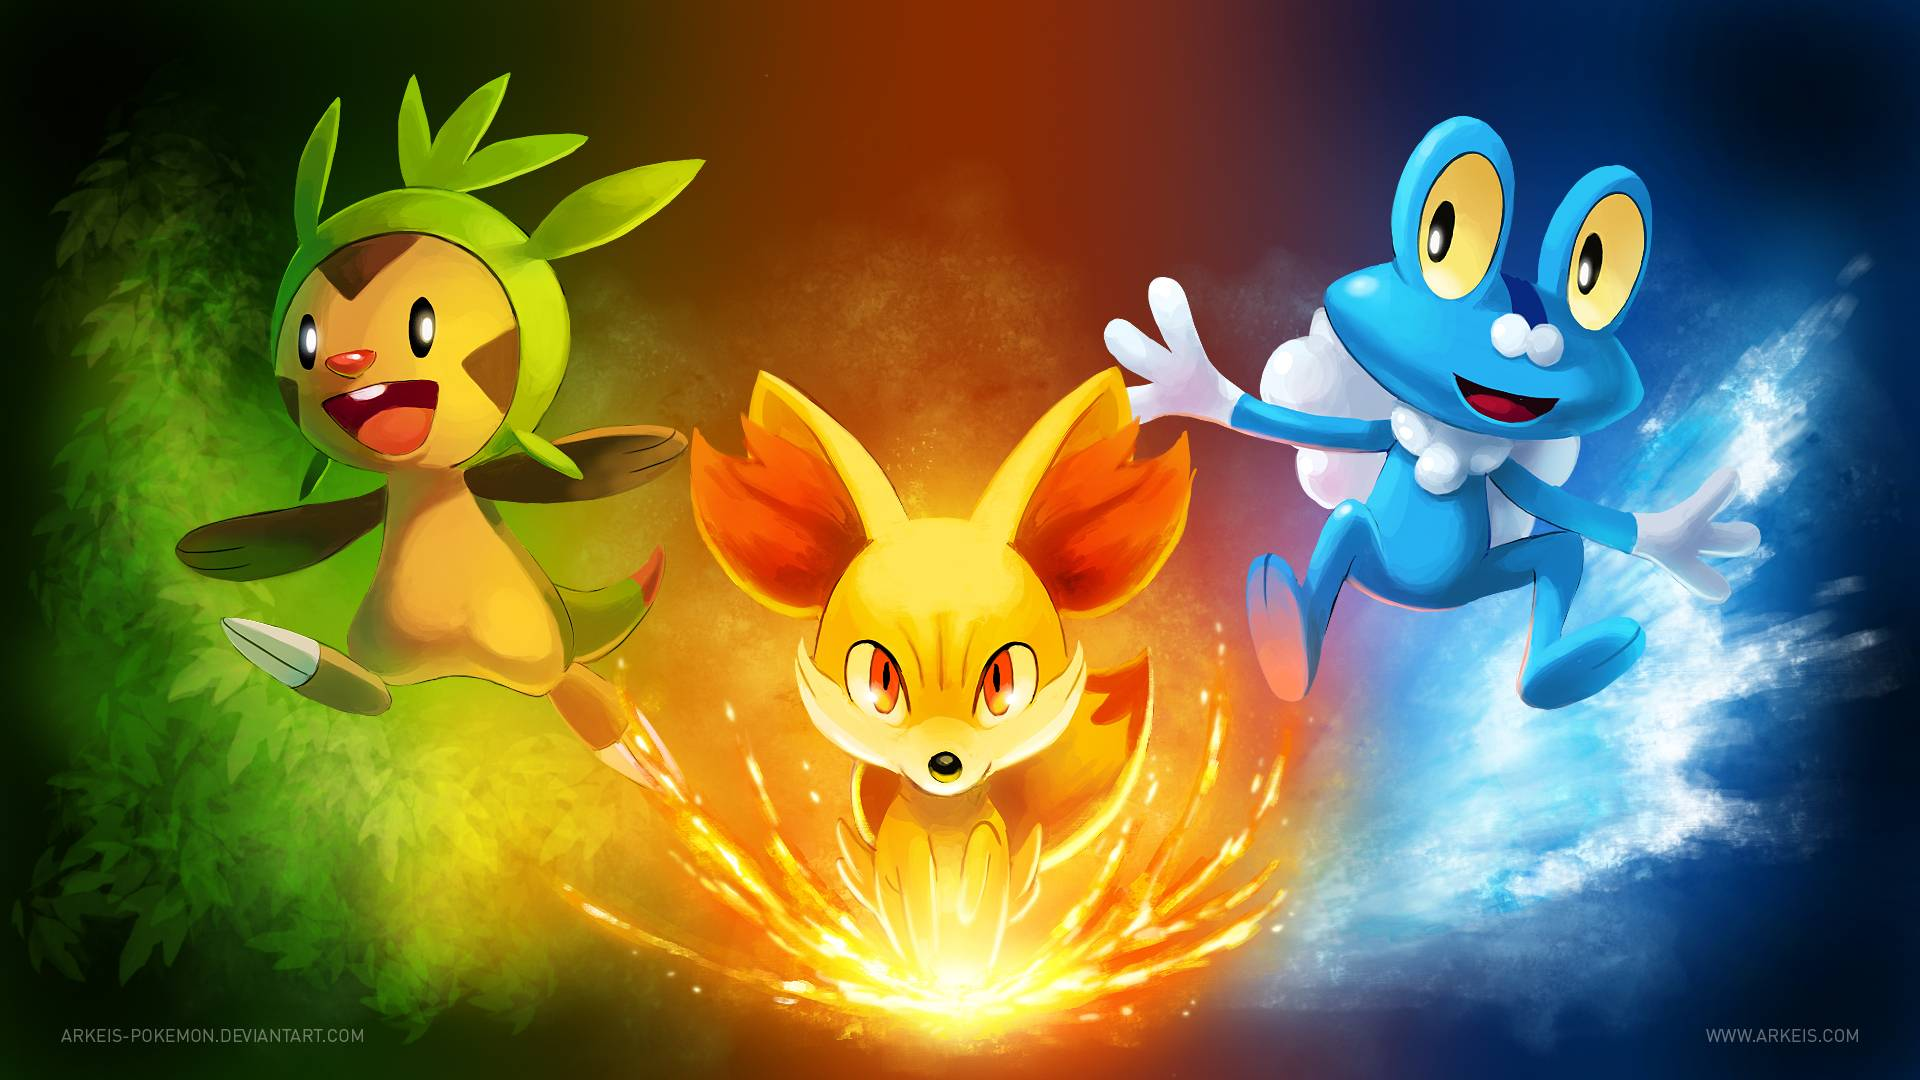 pokemon x and y hd wallpaper « GamingBolt.com: Video Game News ...